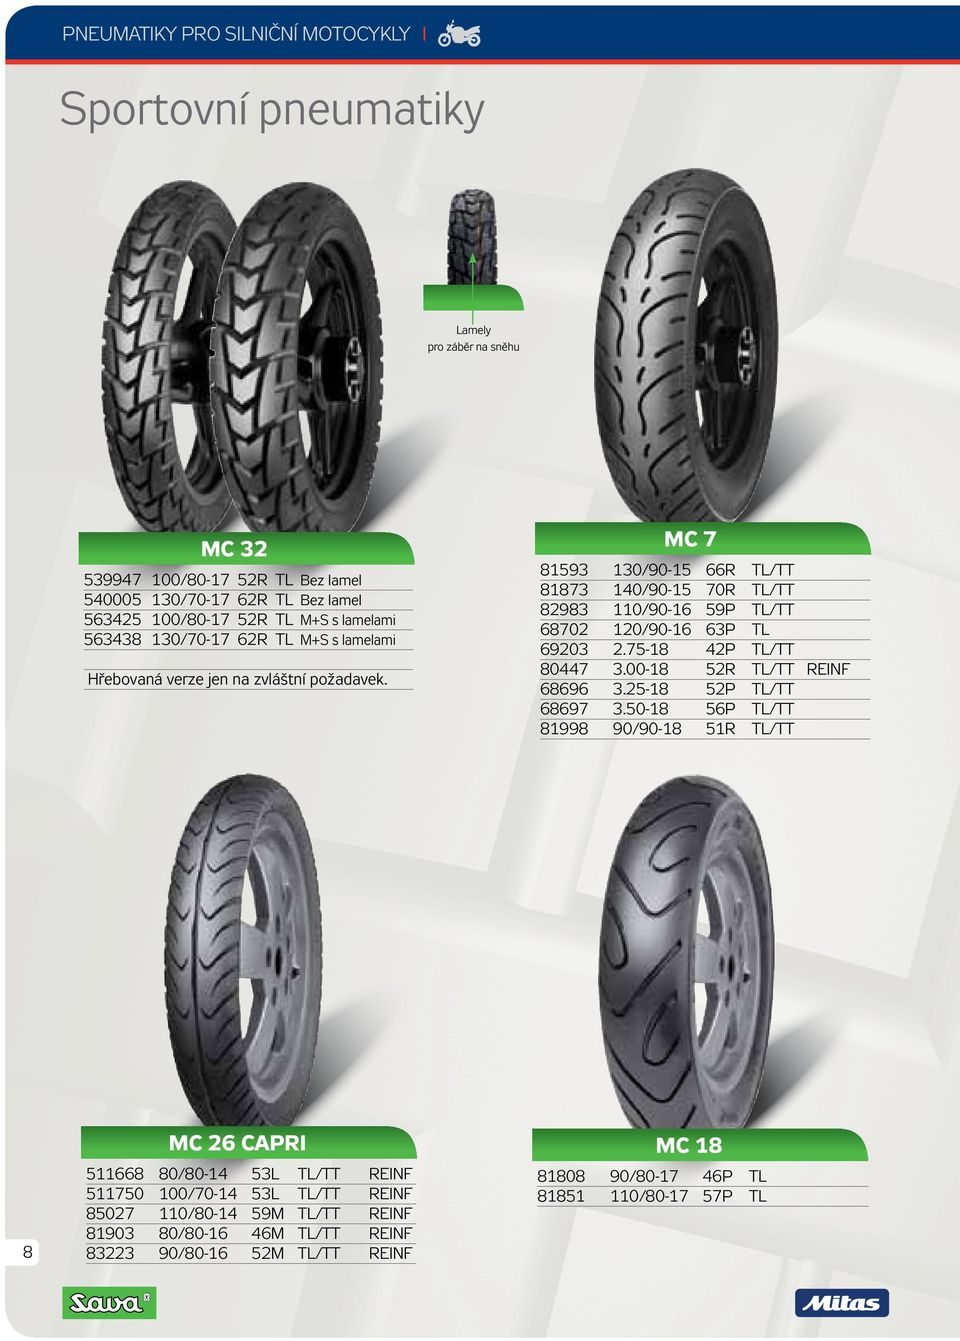 MC 7 81593 130/90-15 66R TL/TT 81873 140/90-15 70R TL/TT 82983 110/90-16 59P TL/TT 68702 120/90-16 63P TL 69203 2.75-18 42P TL/TT 80447 3.00-18 52R TL/TT REINF 68696 3.